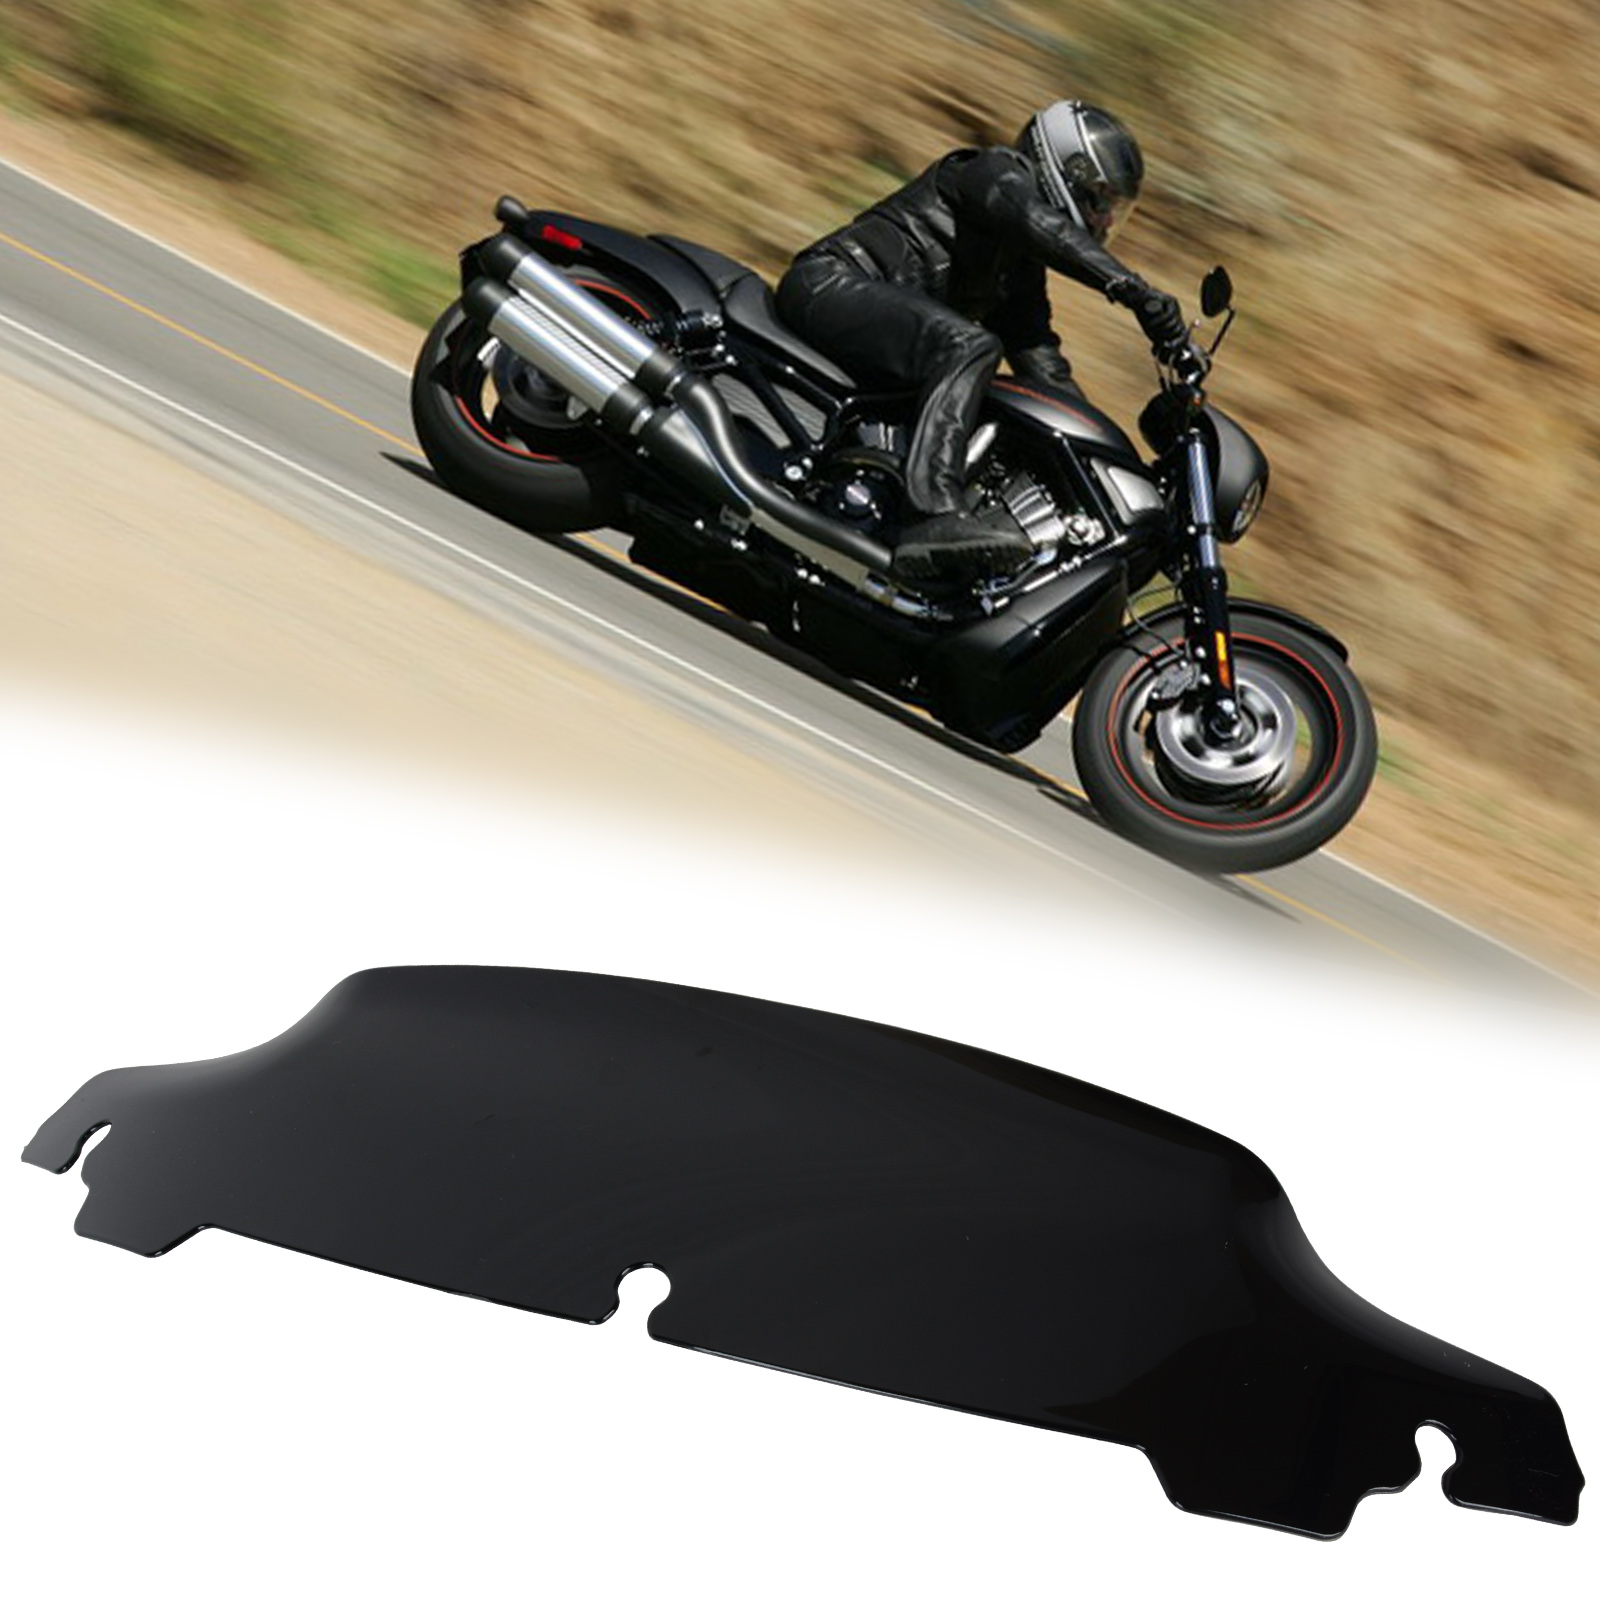 Mayitr Black 4 Windshield Windscreen For 14-up H-arley Electra Street Glide Touring Motorcycle Accessories Parts Automobiles & Motorcycles